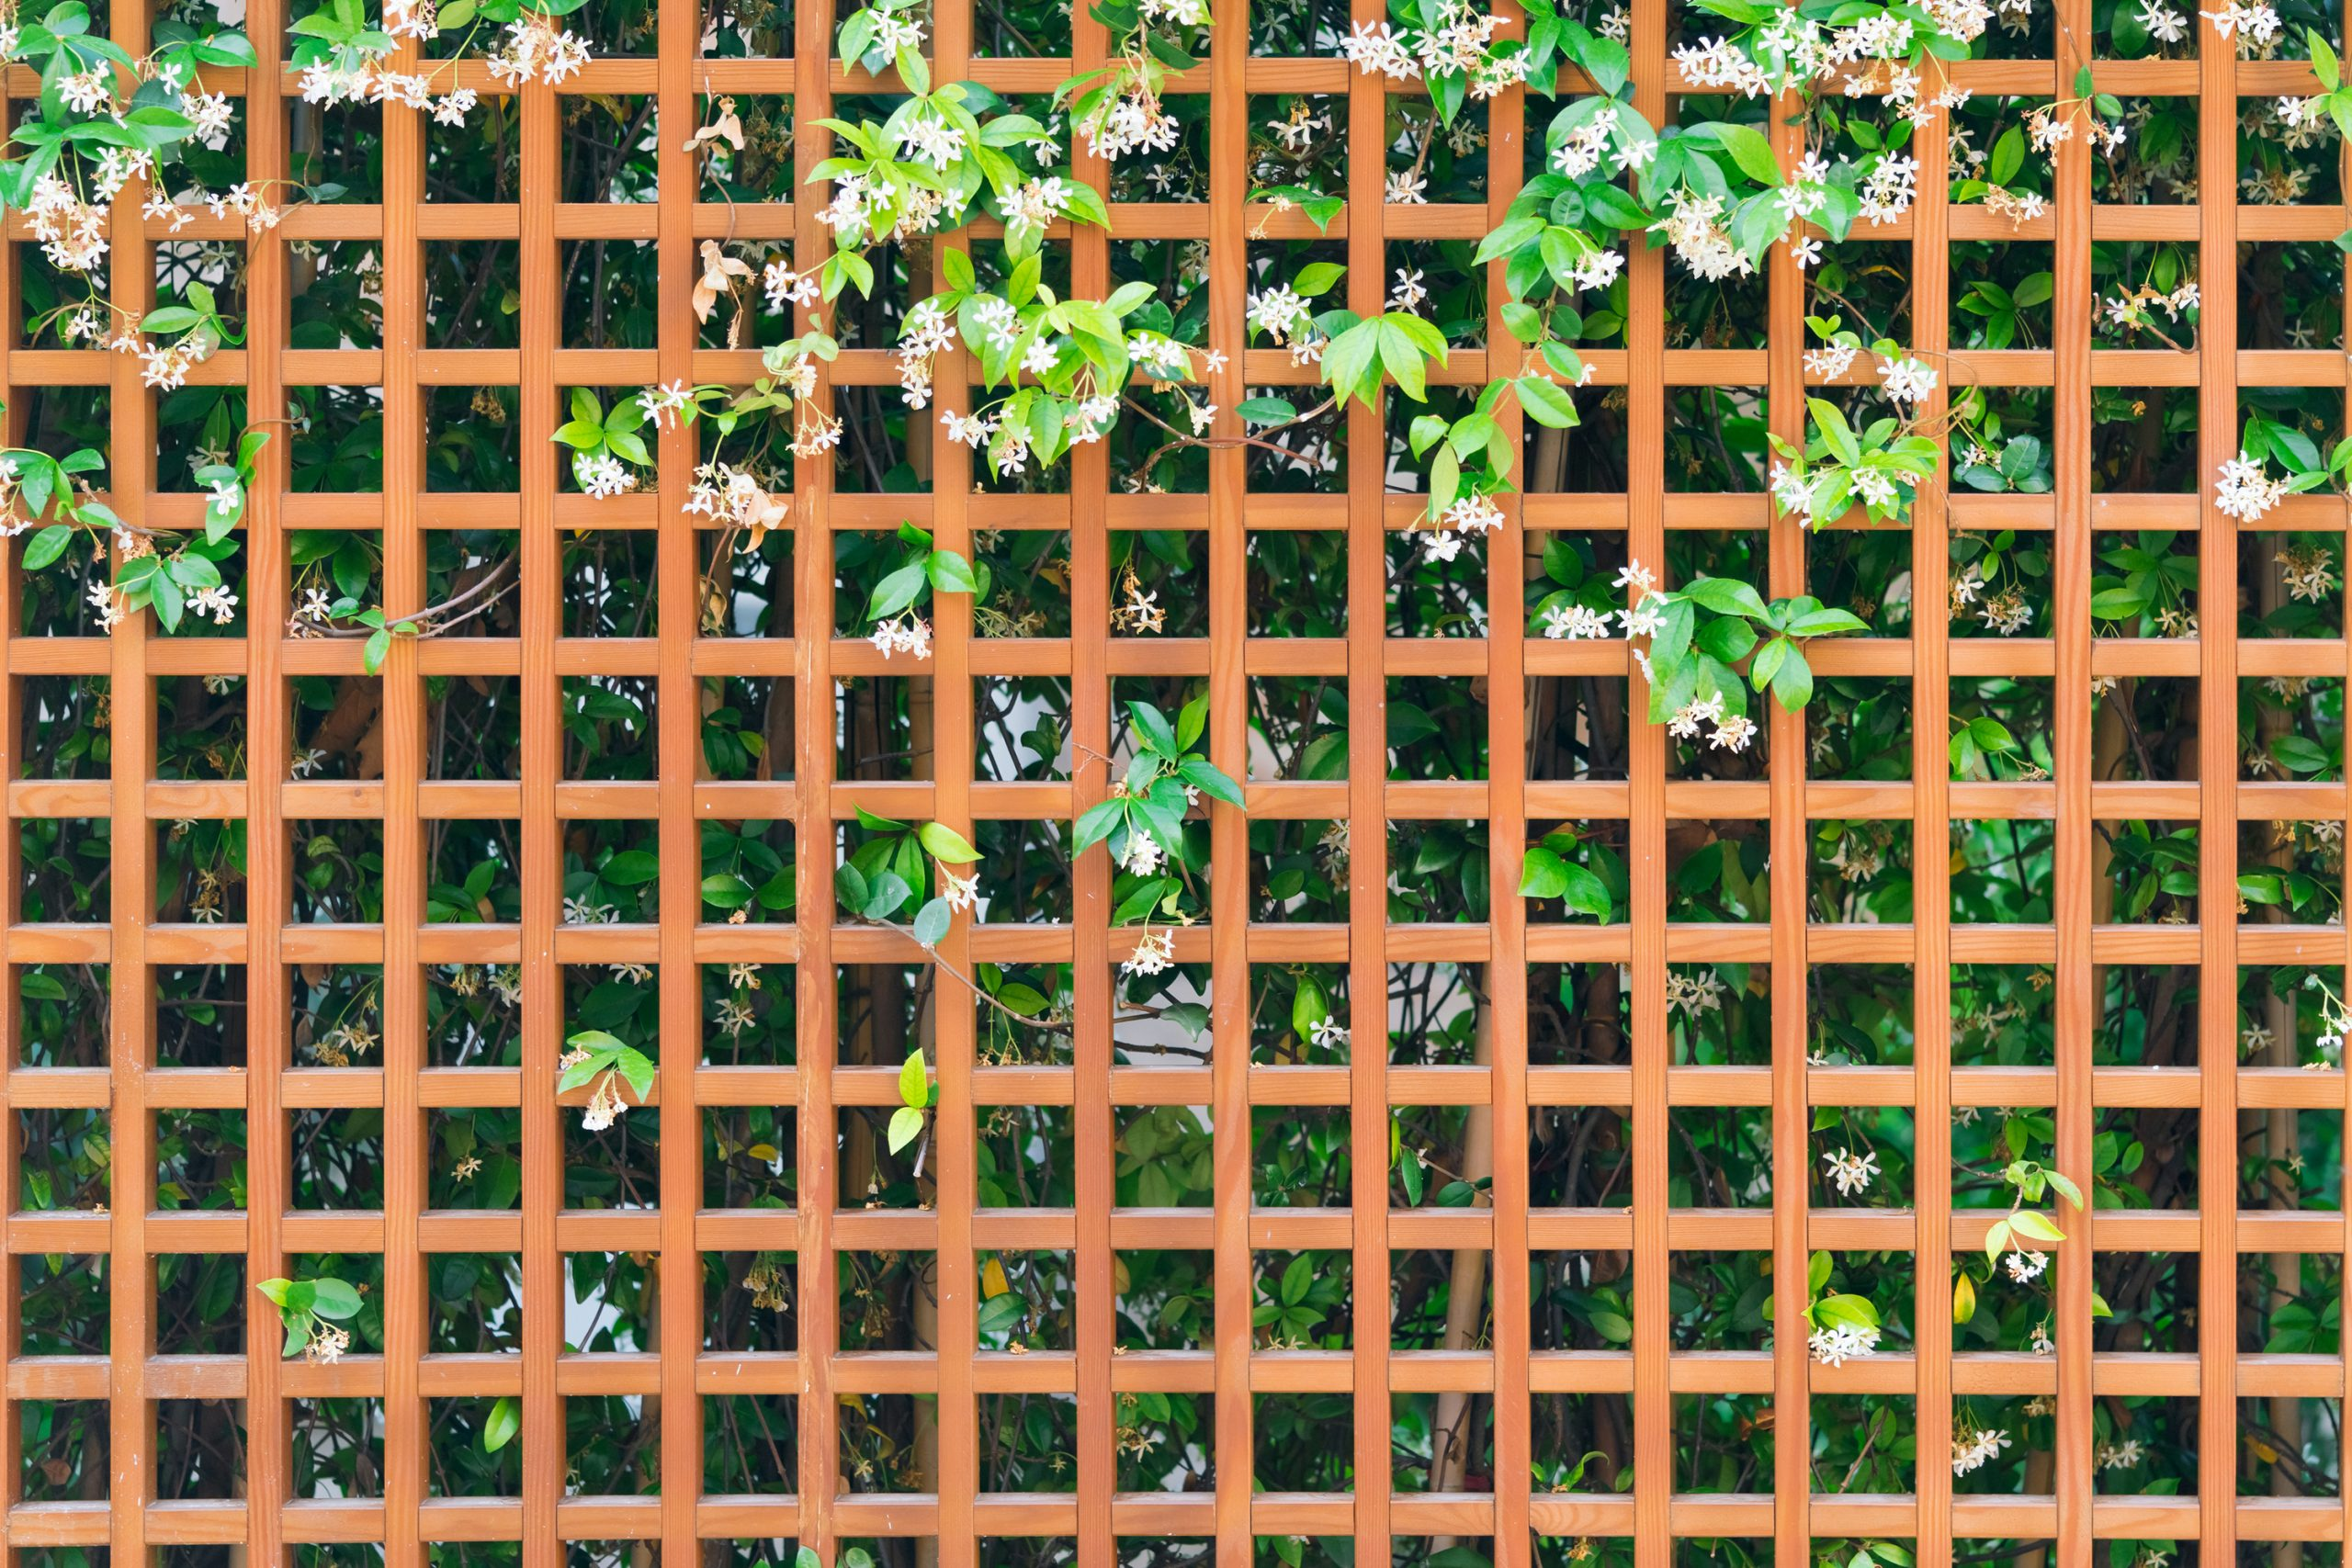 """I've always loved the look of greenery growing up some kind of trellis. It has a very """"Secret Garden"""" feel to it. If you're dying for a magical look like this in your own backyard, you can make your own trellis for a fraction of the price. Keep reading below for some of the best DIY trellis ideas on the internet!"""